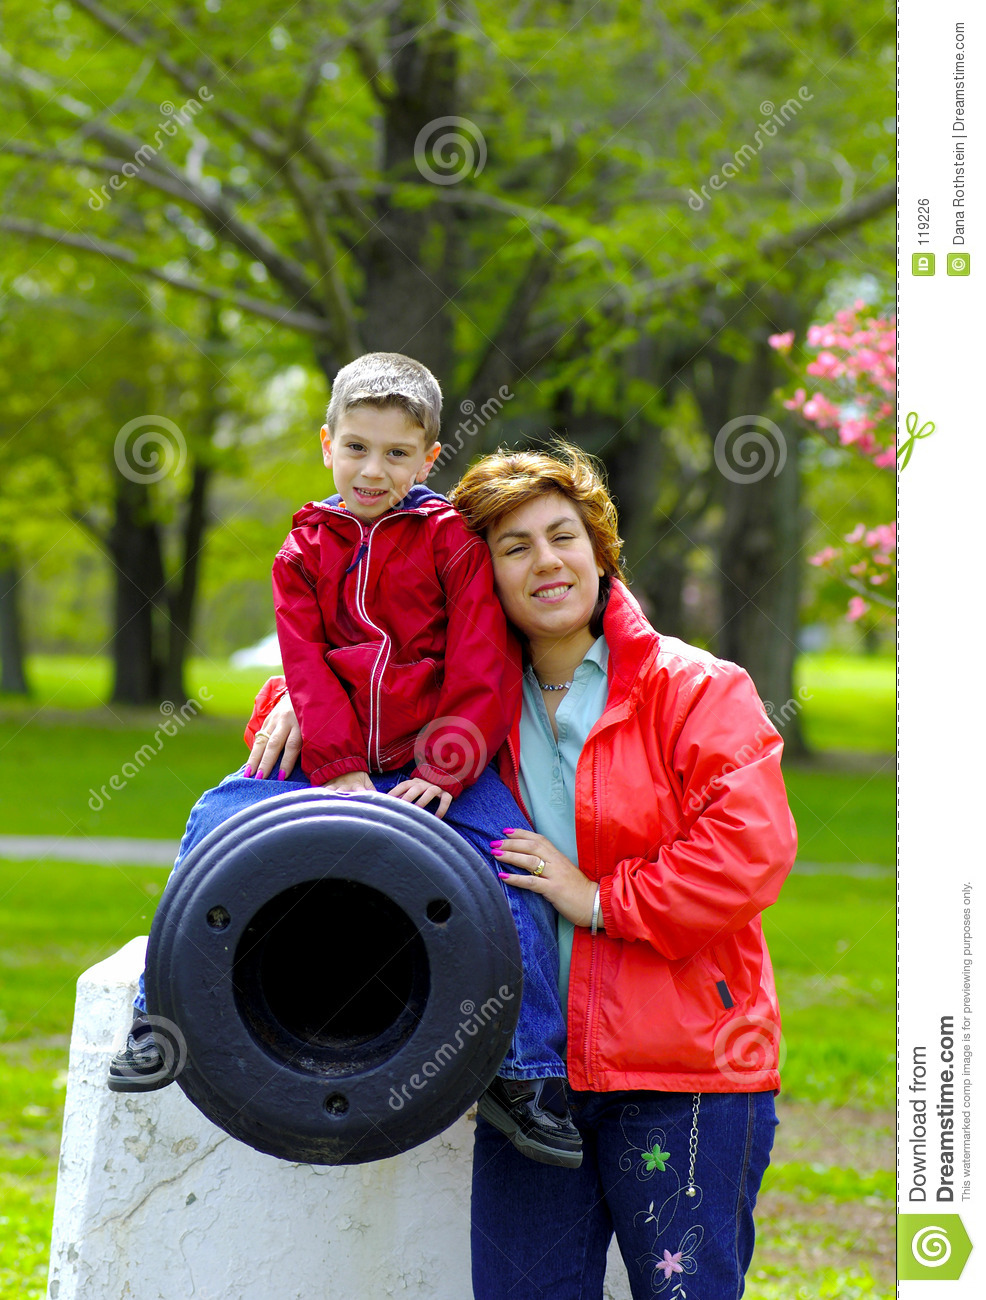 Mother and Child at Park